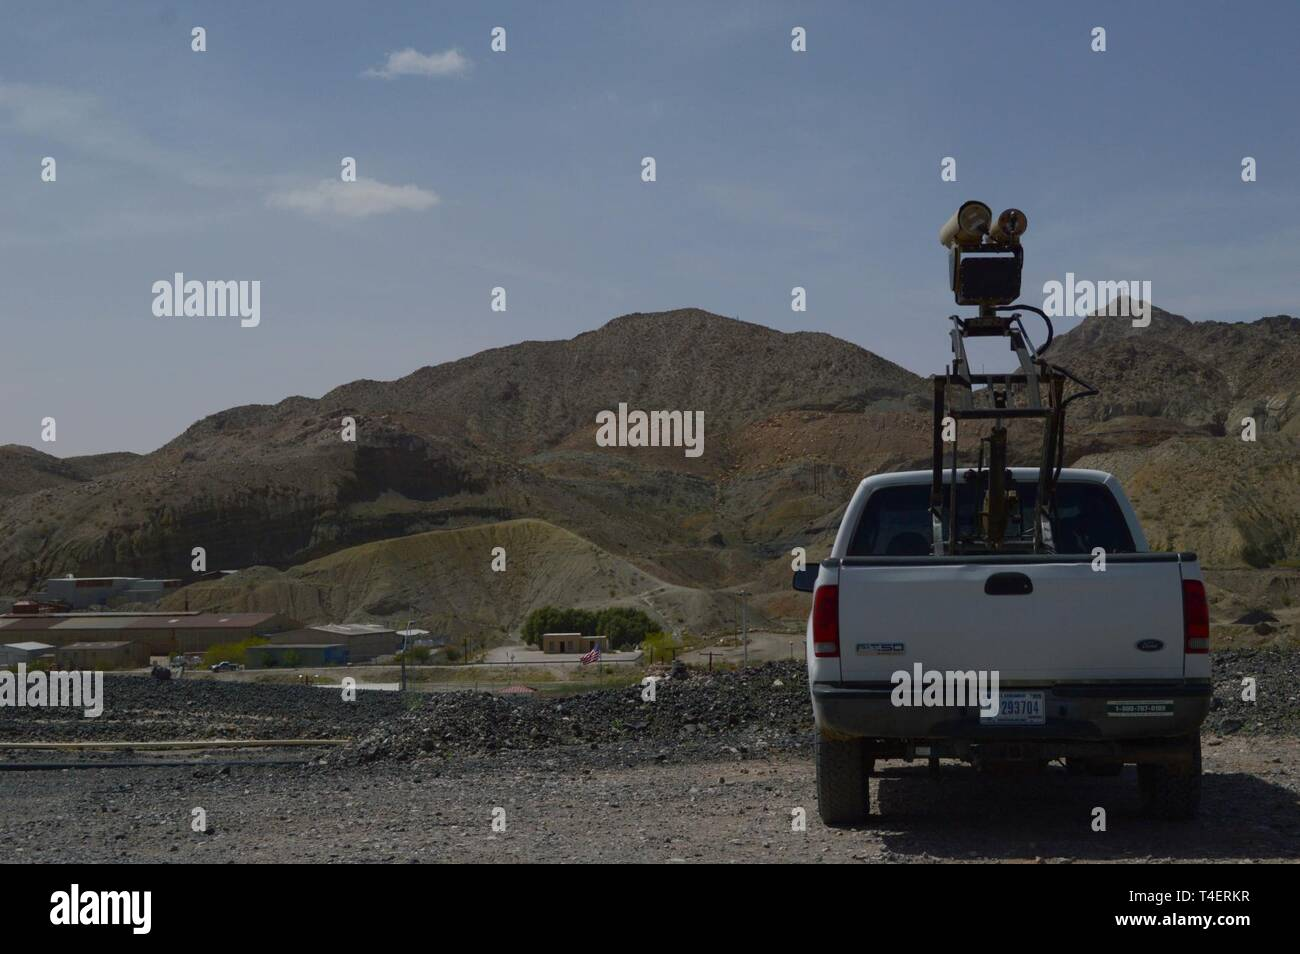 """A Mobile Surveillance Camera parked at """"Monument Two"""" near the Santa Teresa Port of Entry in Sunland Park, N.M., April 3, 2019. The Monument Two MSC is one of 22 along the New Mexico/Mexico border operated by Soldiers assigned to 1-37 Field Artillery Battalion. The Department of Defense has deployed units across the Southwest Border at the request of U.S. Customs and Border Protection and is providing logistical, engineering, and force protection functions. Stock Photo"""